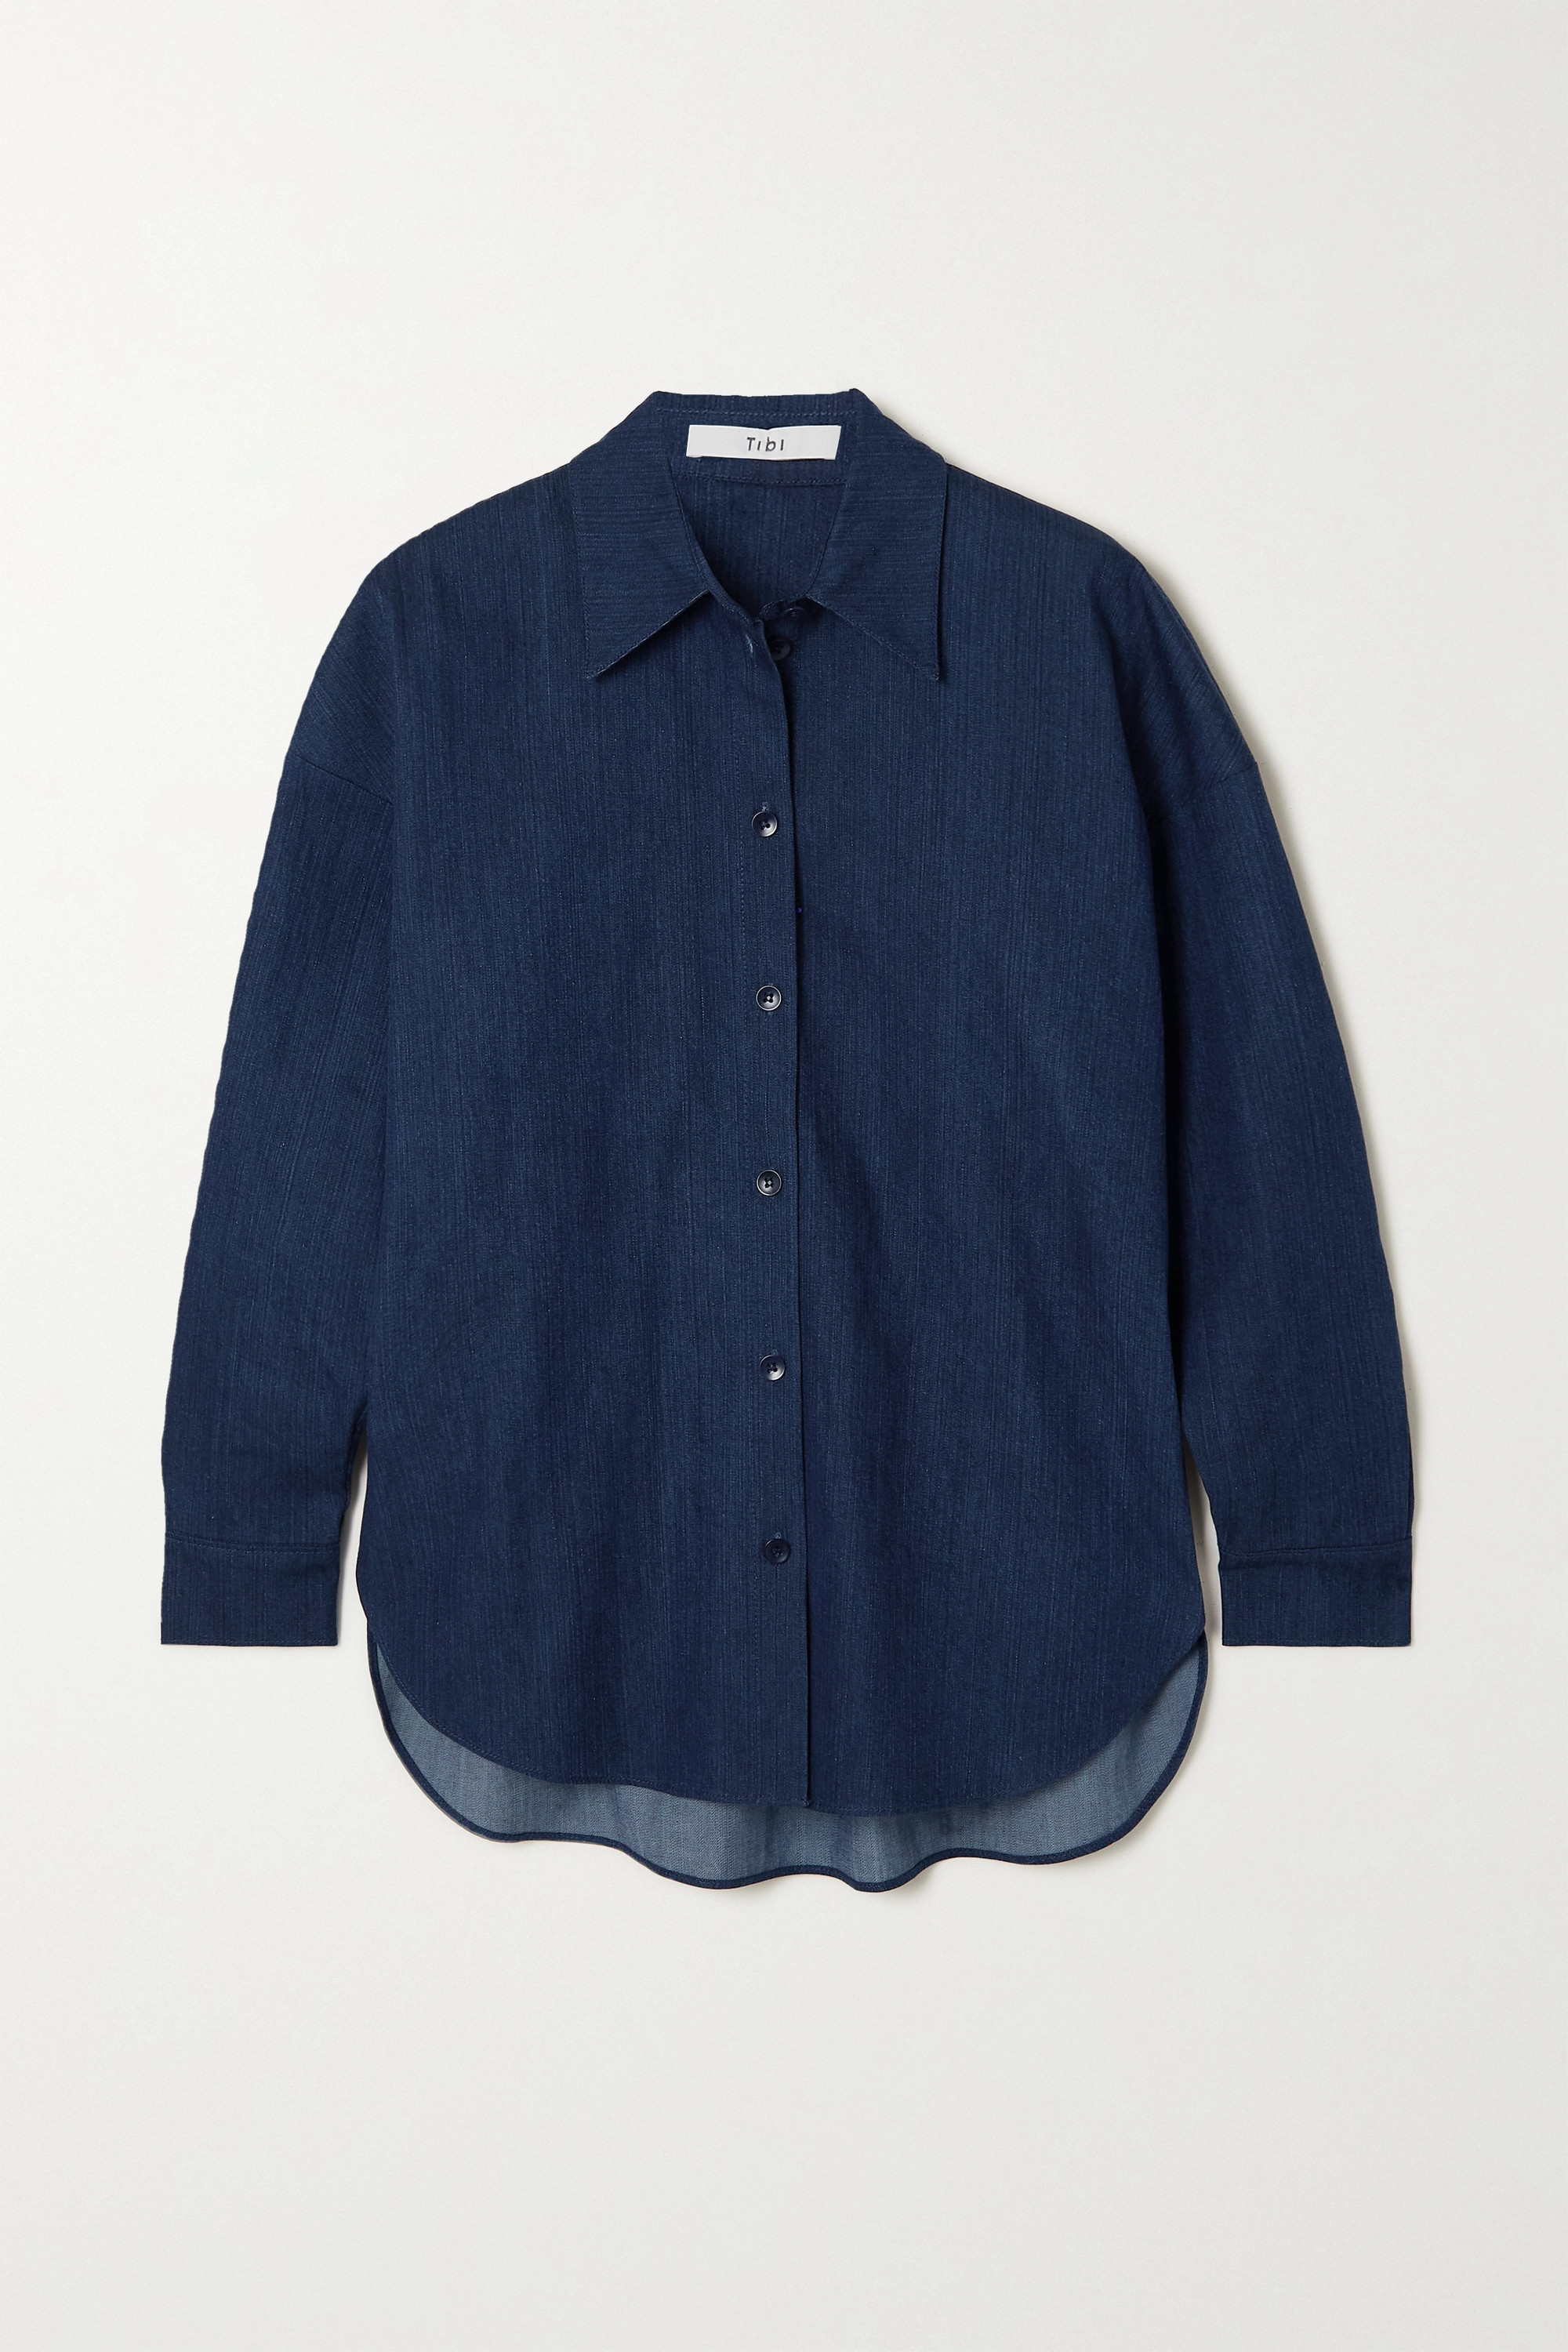 Tibi - Summer oversized denim shirt